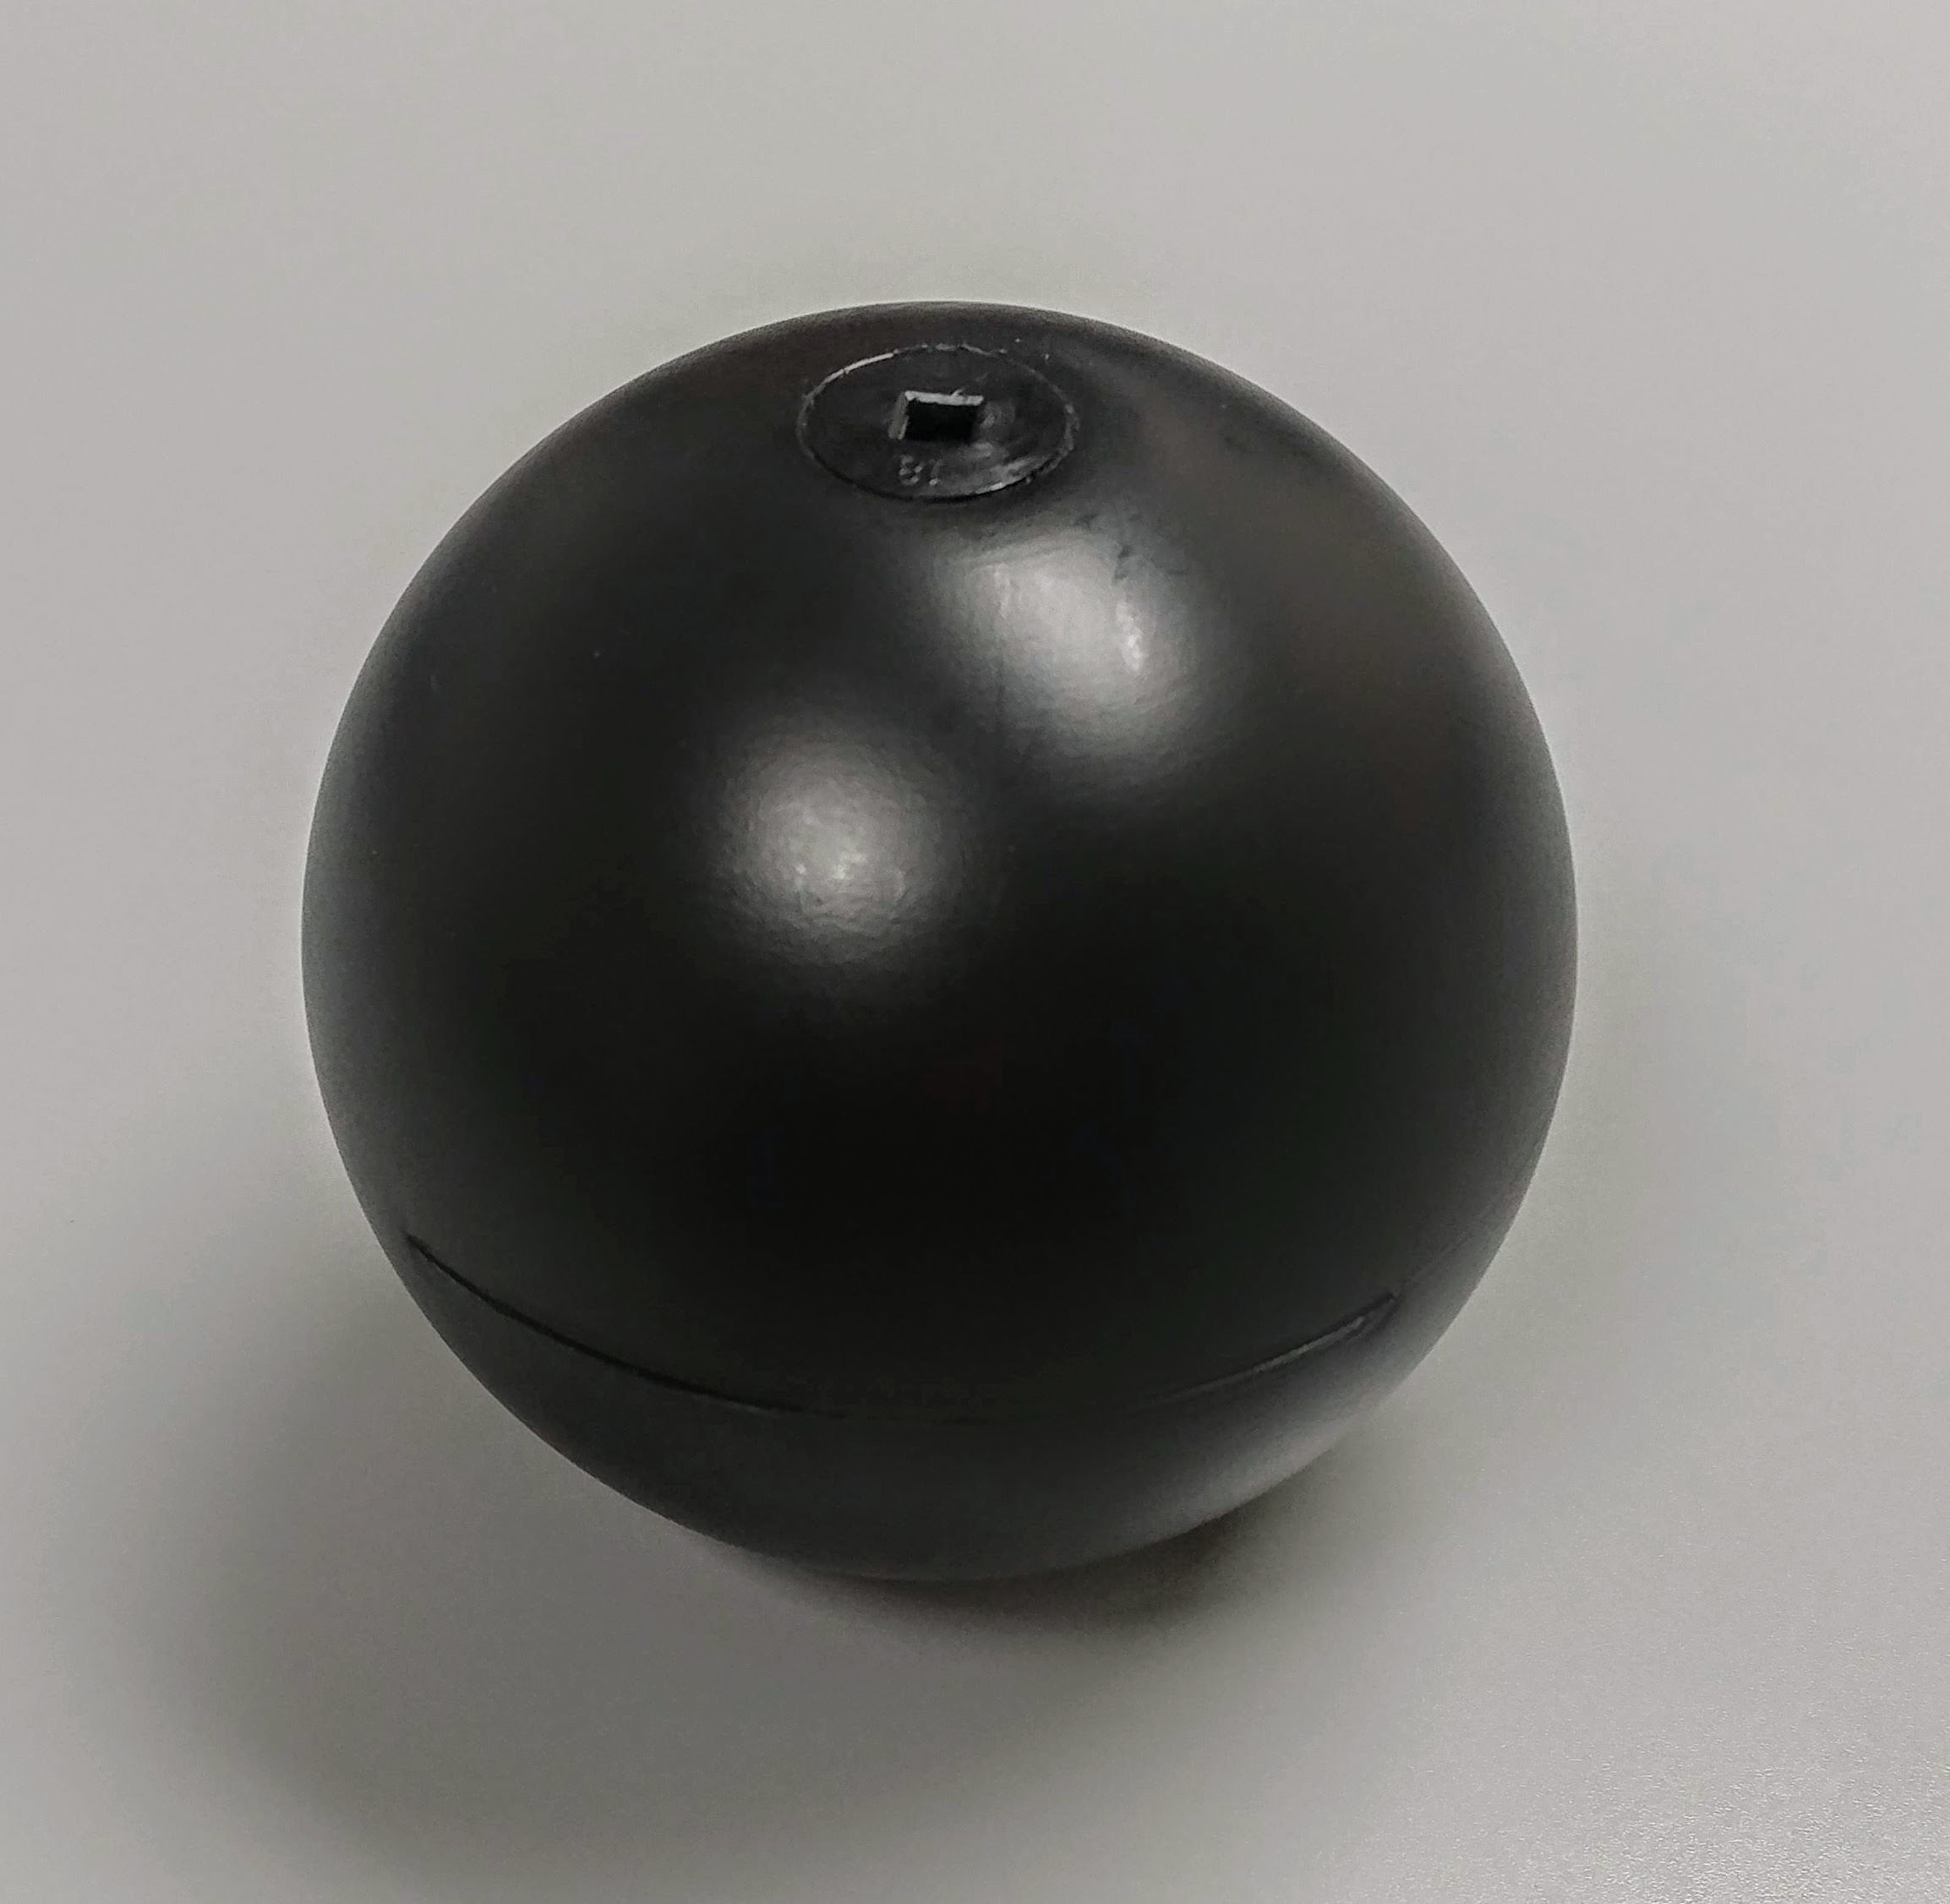 Shade Ball, 4 inch, Sealed Water Ballast, NSF Rating Image